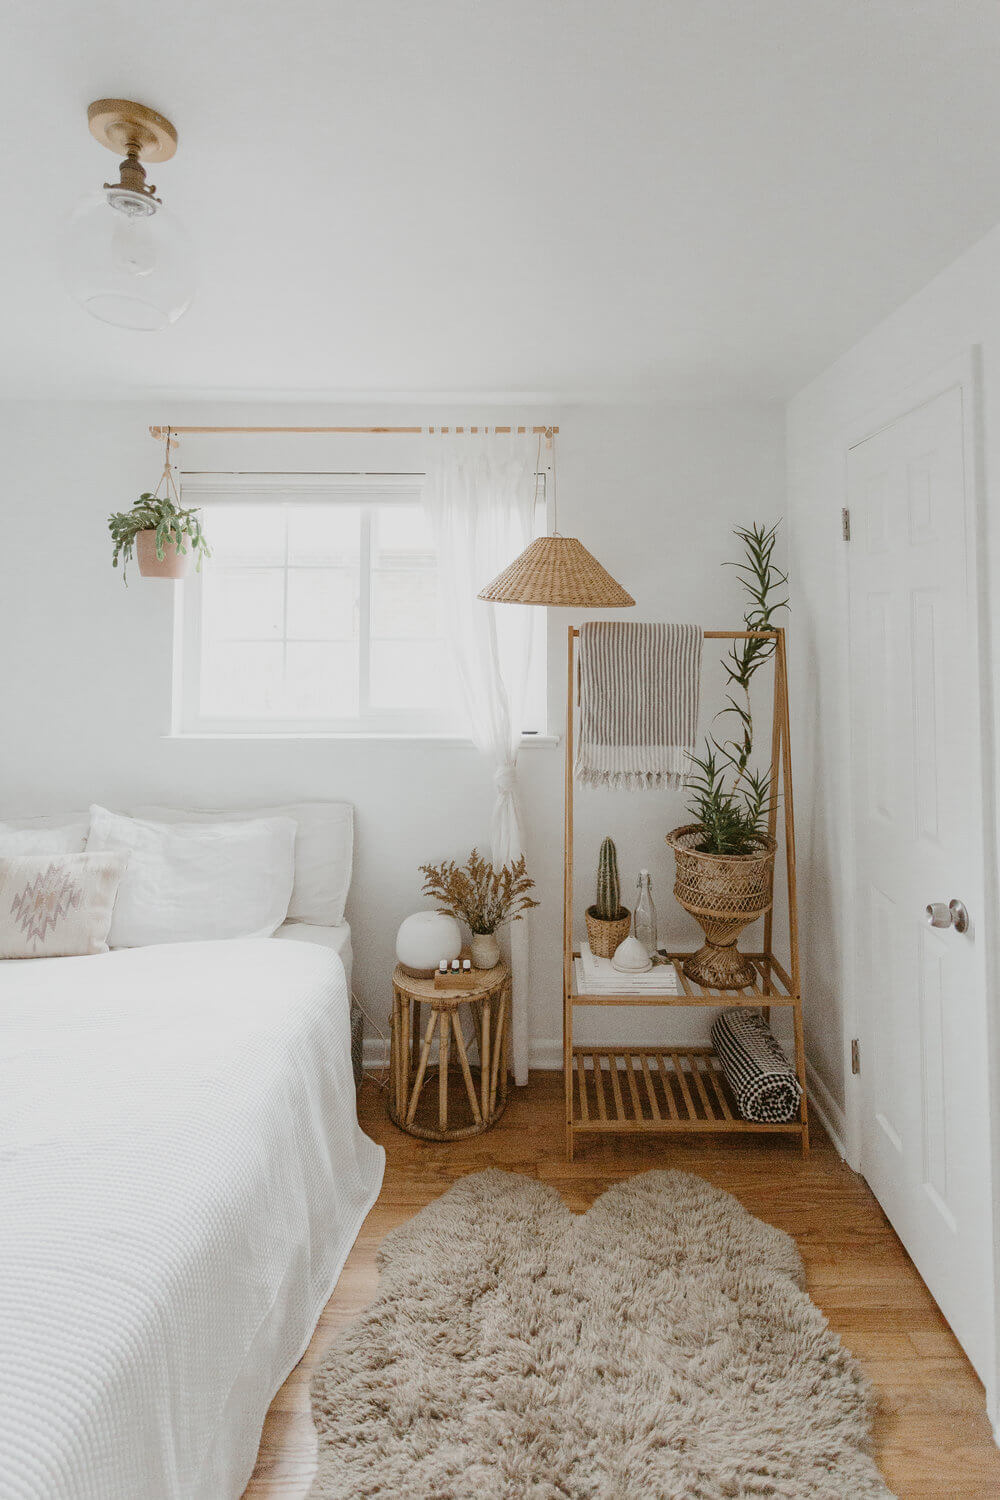 5 Best Natural Home Decor Ideas for Every Room in 5